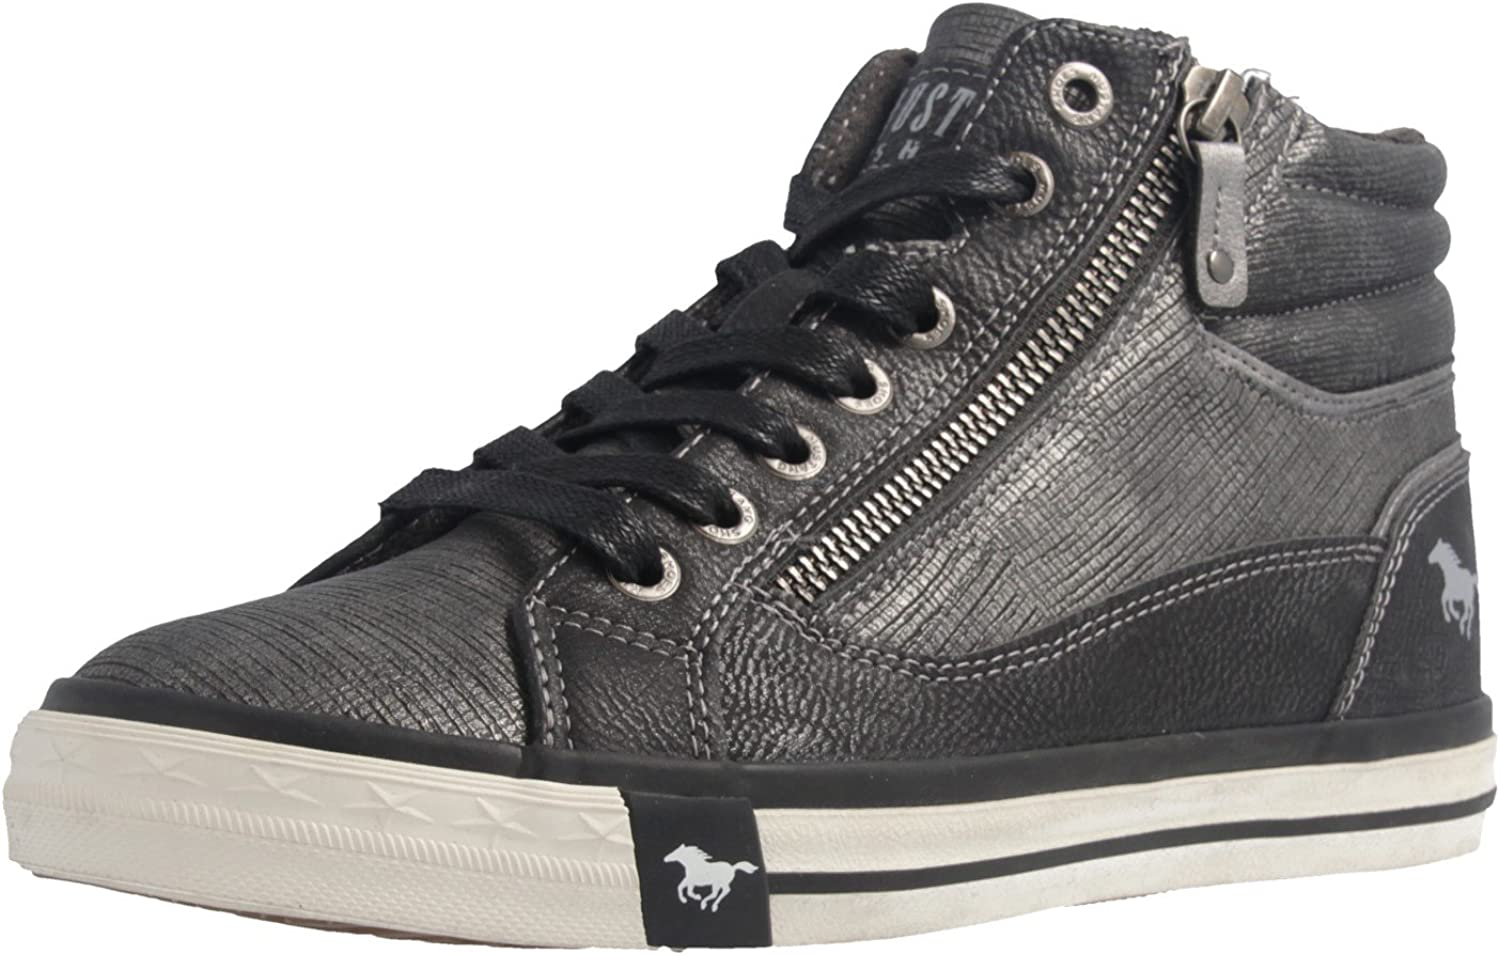 Large High Top Sneaker Big Shoes